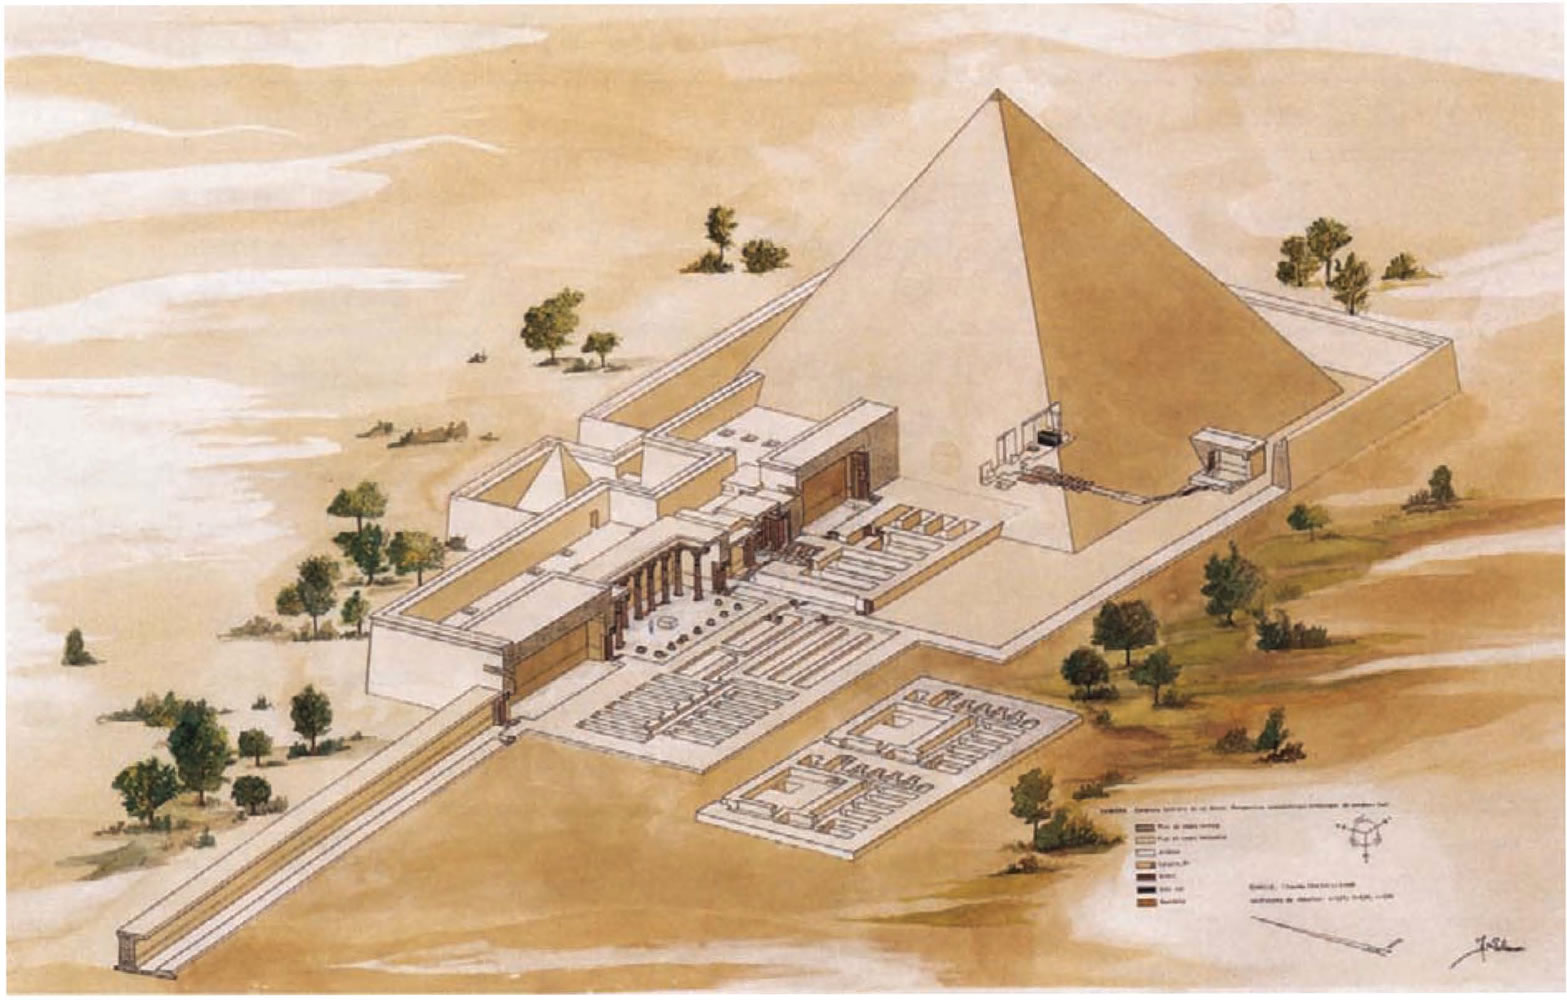 Pyramids and their temples